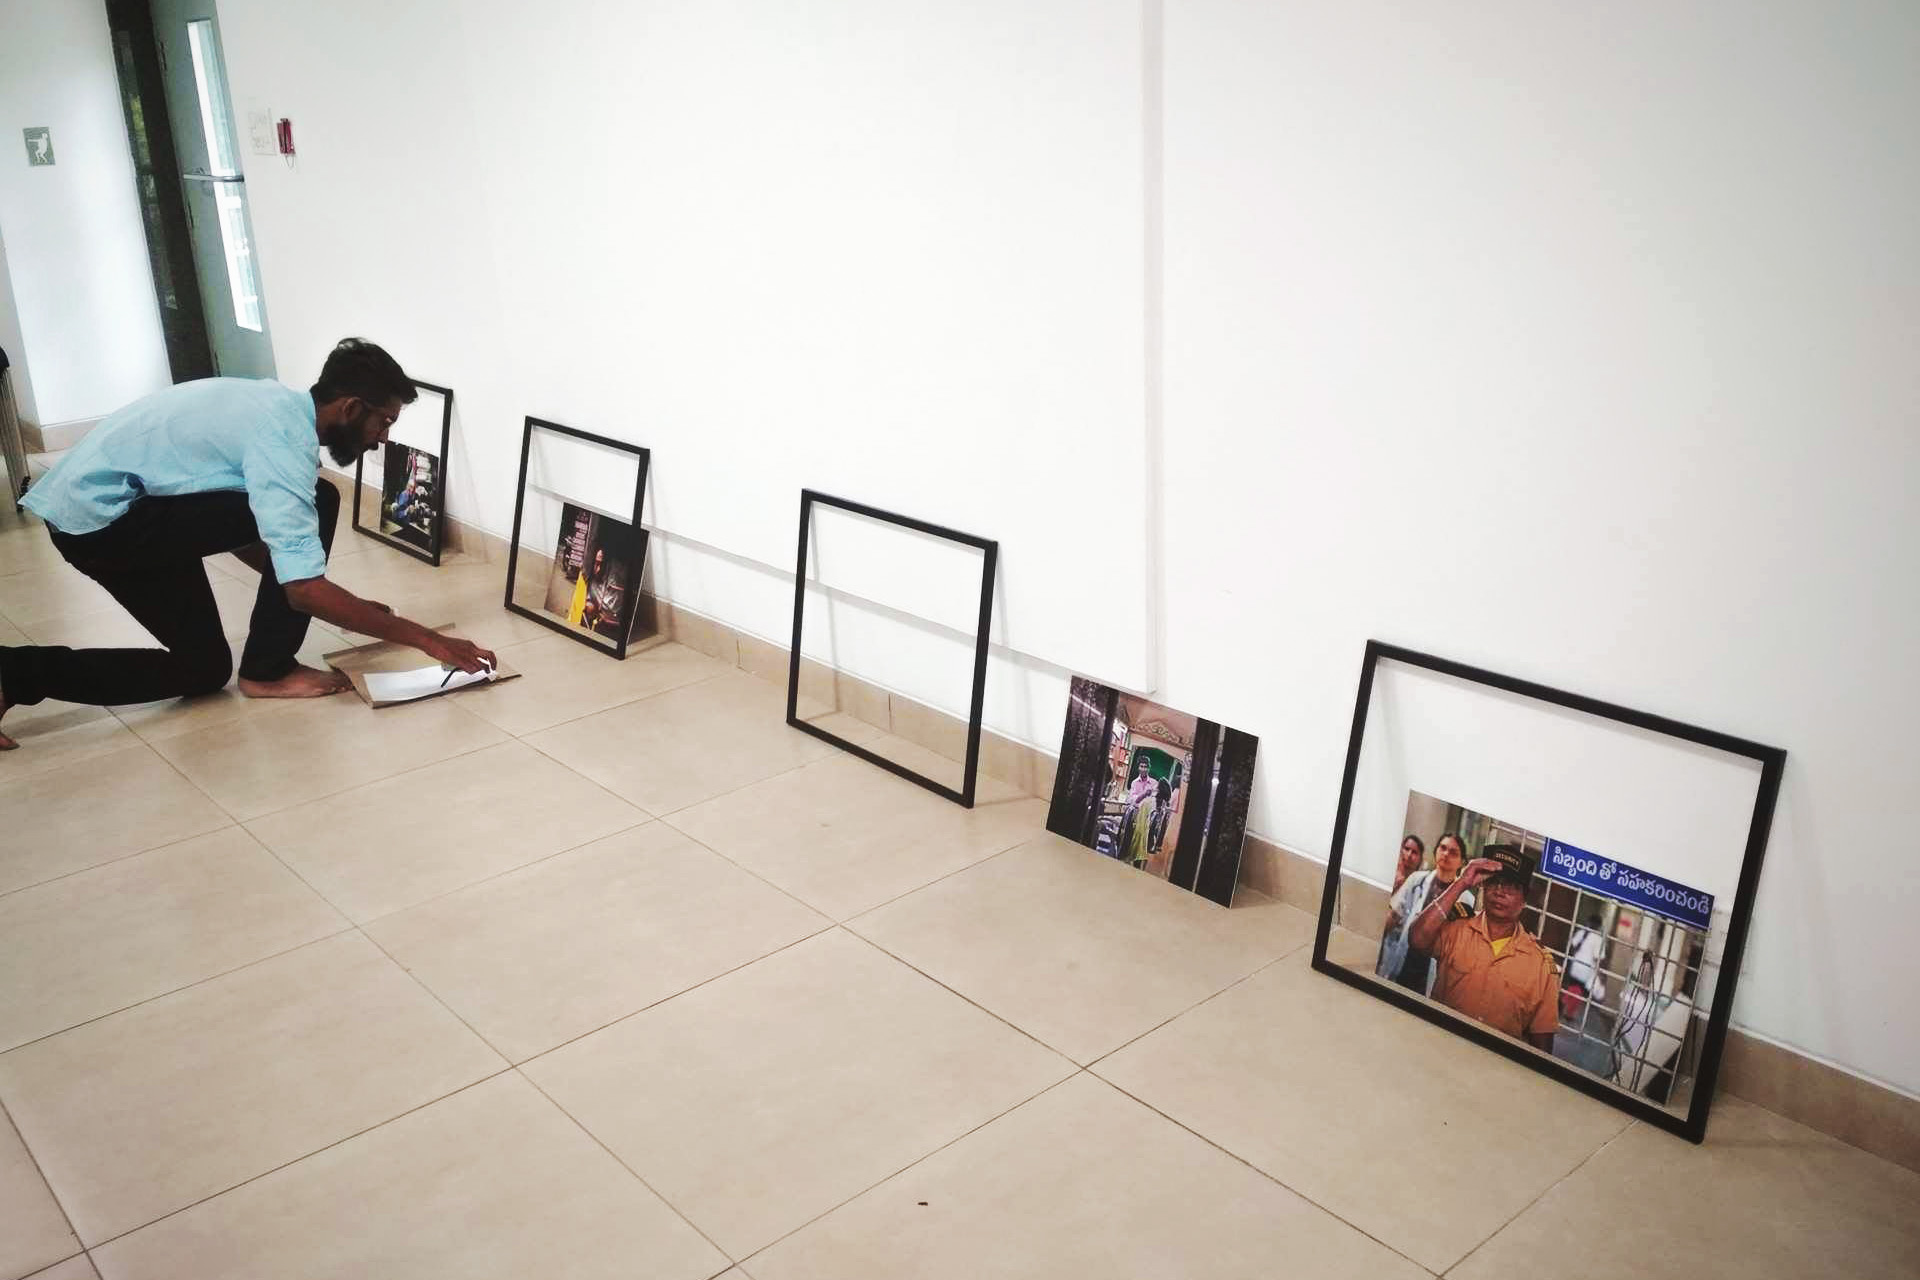 Venky setting up the frames on Monday.